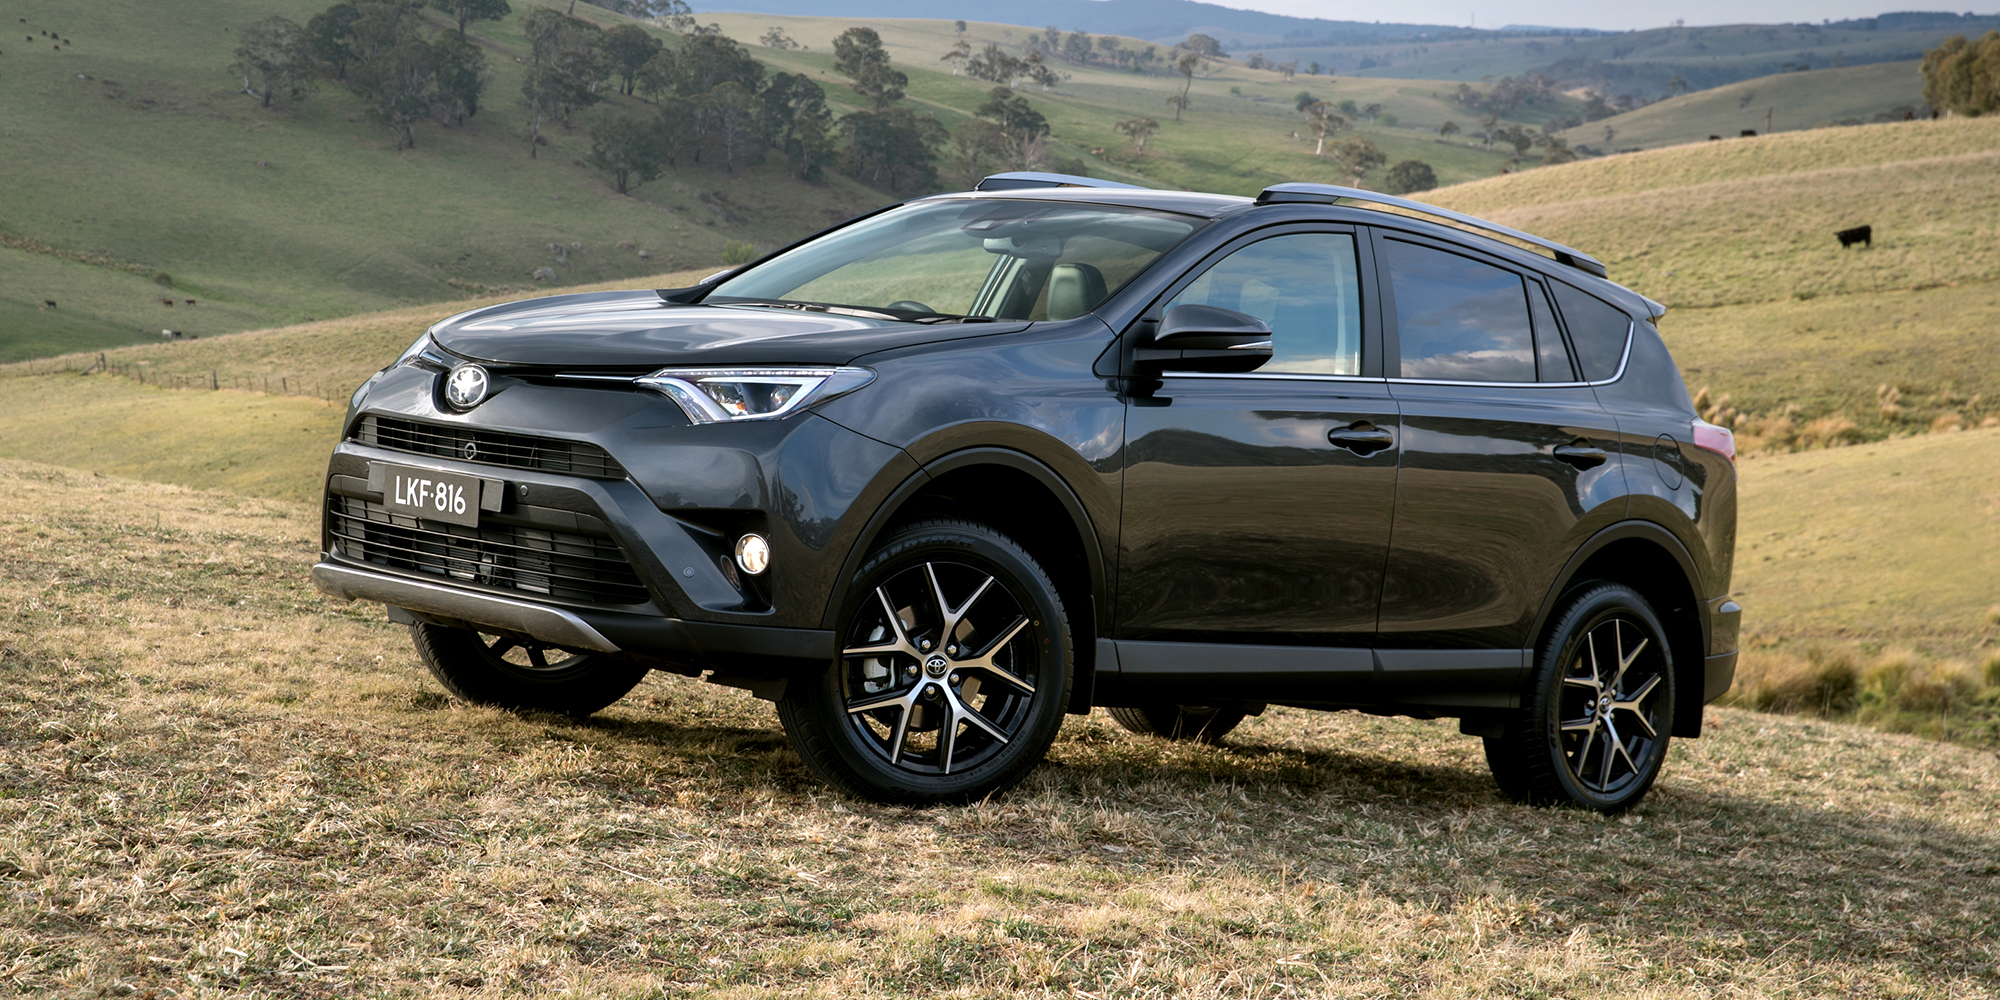 2018 toyota rav4 pricing and specs photos 1 of 9. Black Bedroom Furniture Sets. Home Design Ideas